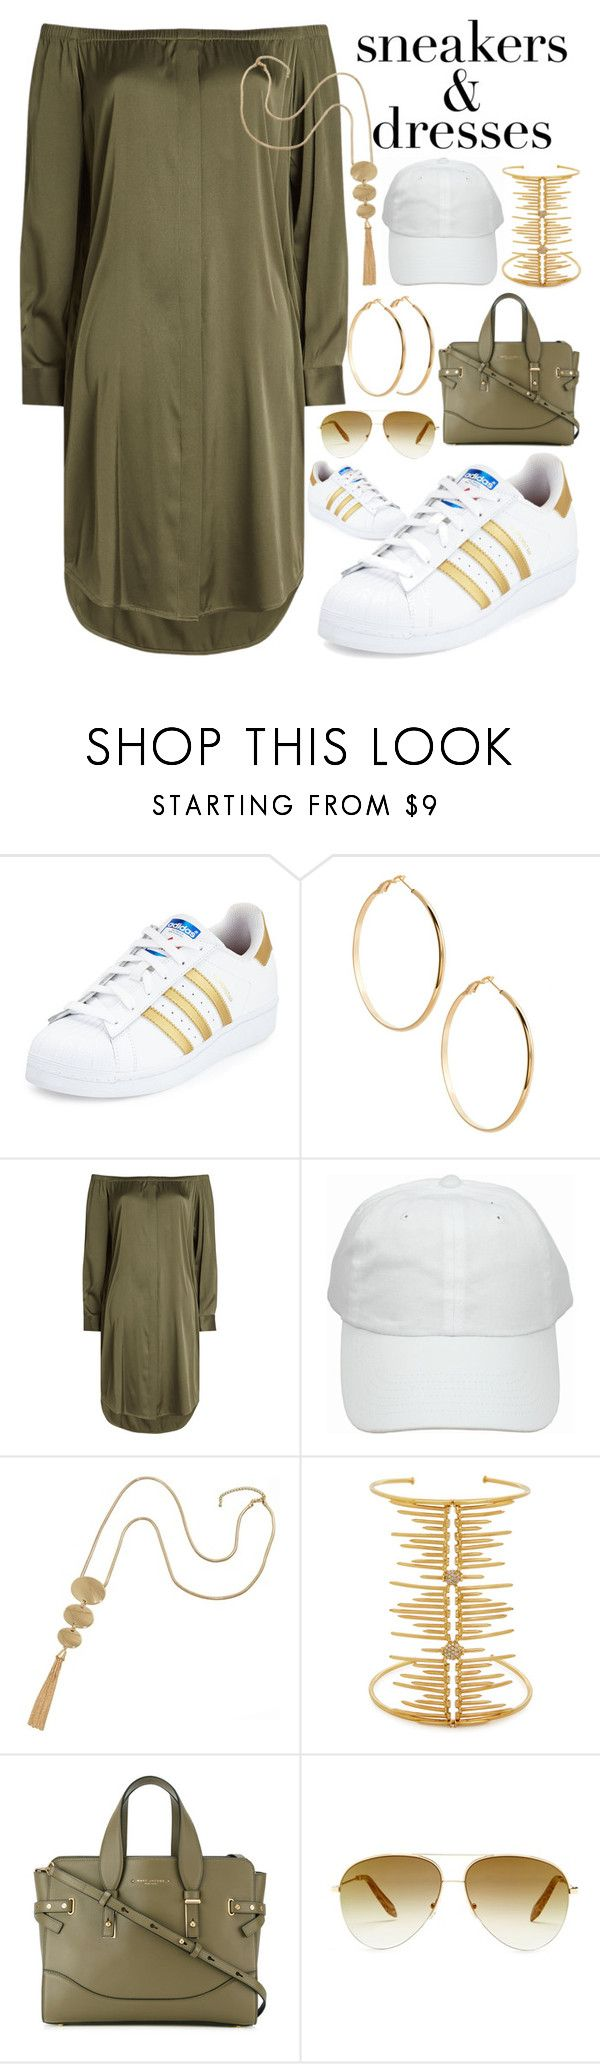 """sneakers and dresses"" by ashley-andreasen ❤ liked on Polyvore featuring adidas, GUESS by Marciano, DKNY, Joanna Laura Constantine, Marc Jacobs and Victoria Beckham"